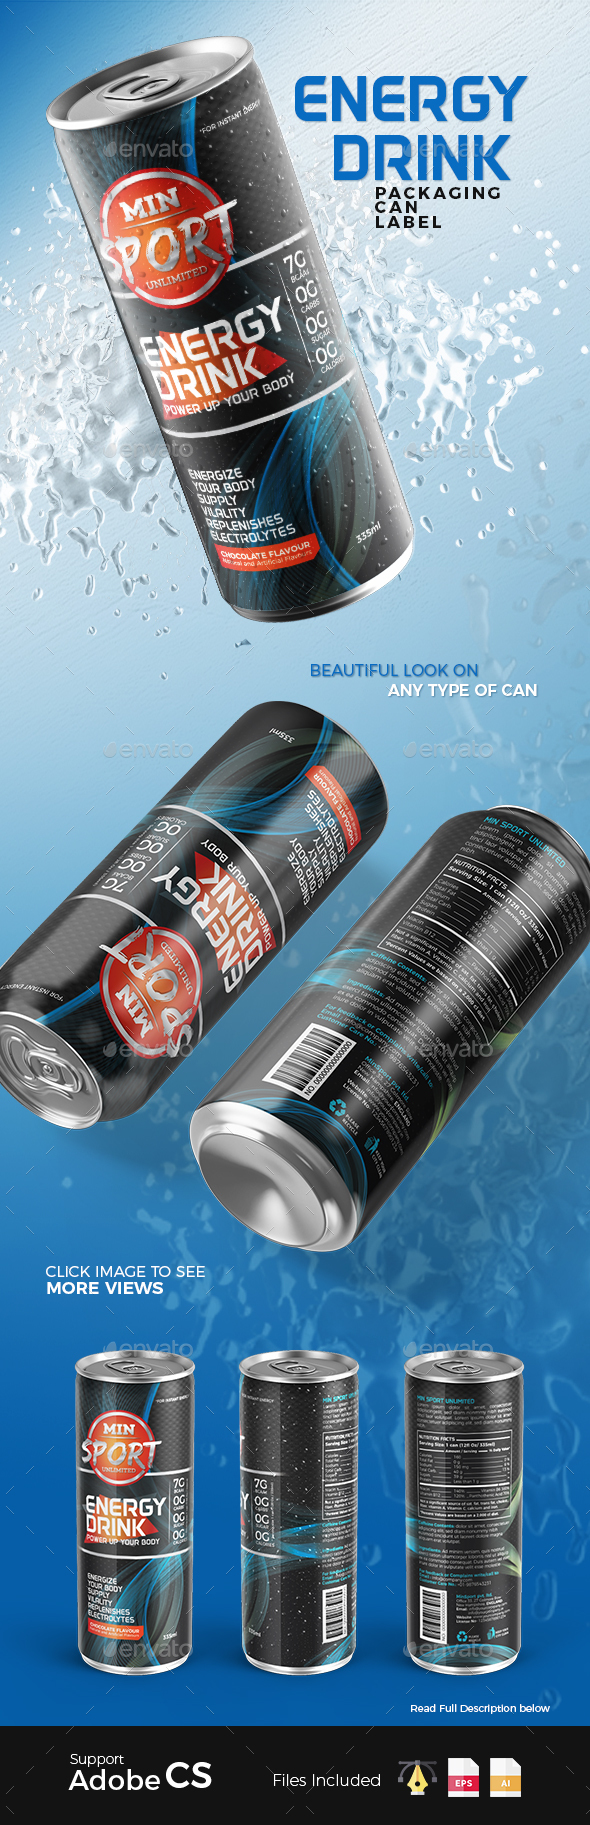 Energy Drink Packaging Can Label - Packaging Print Templates